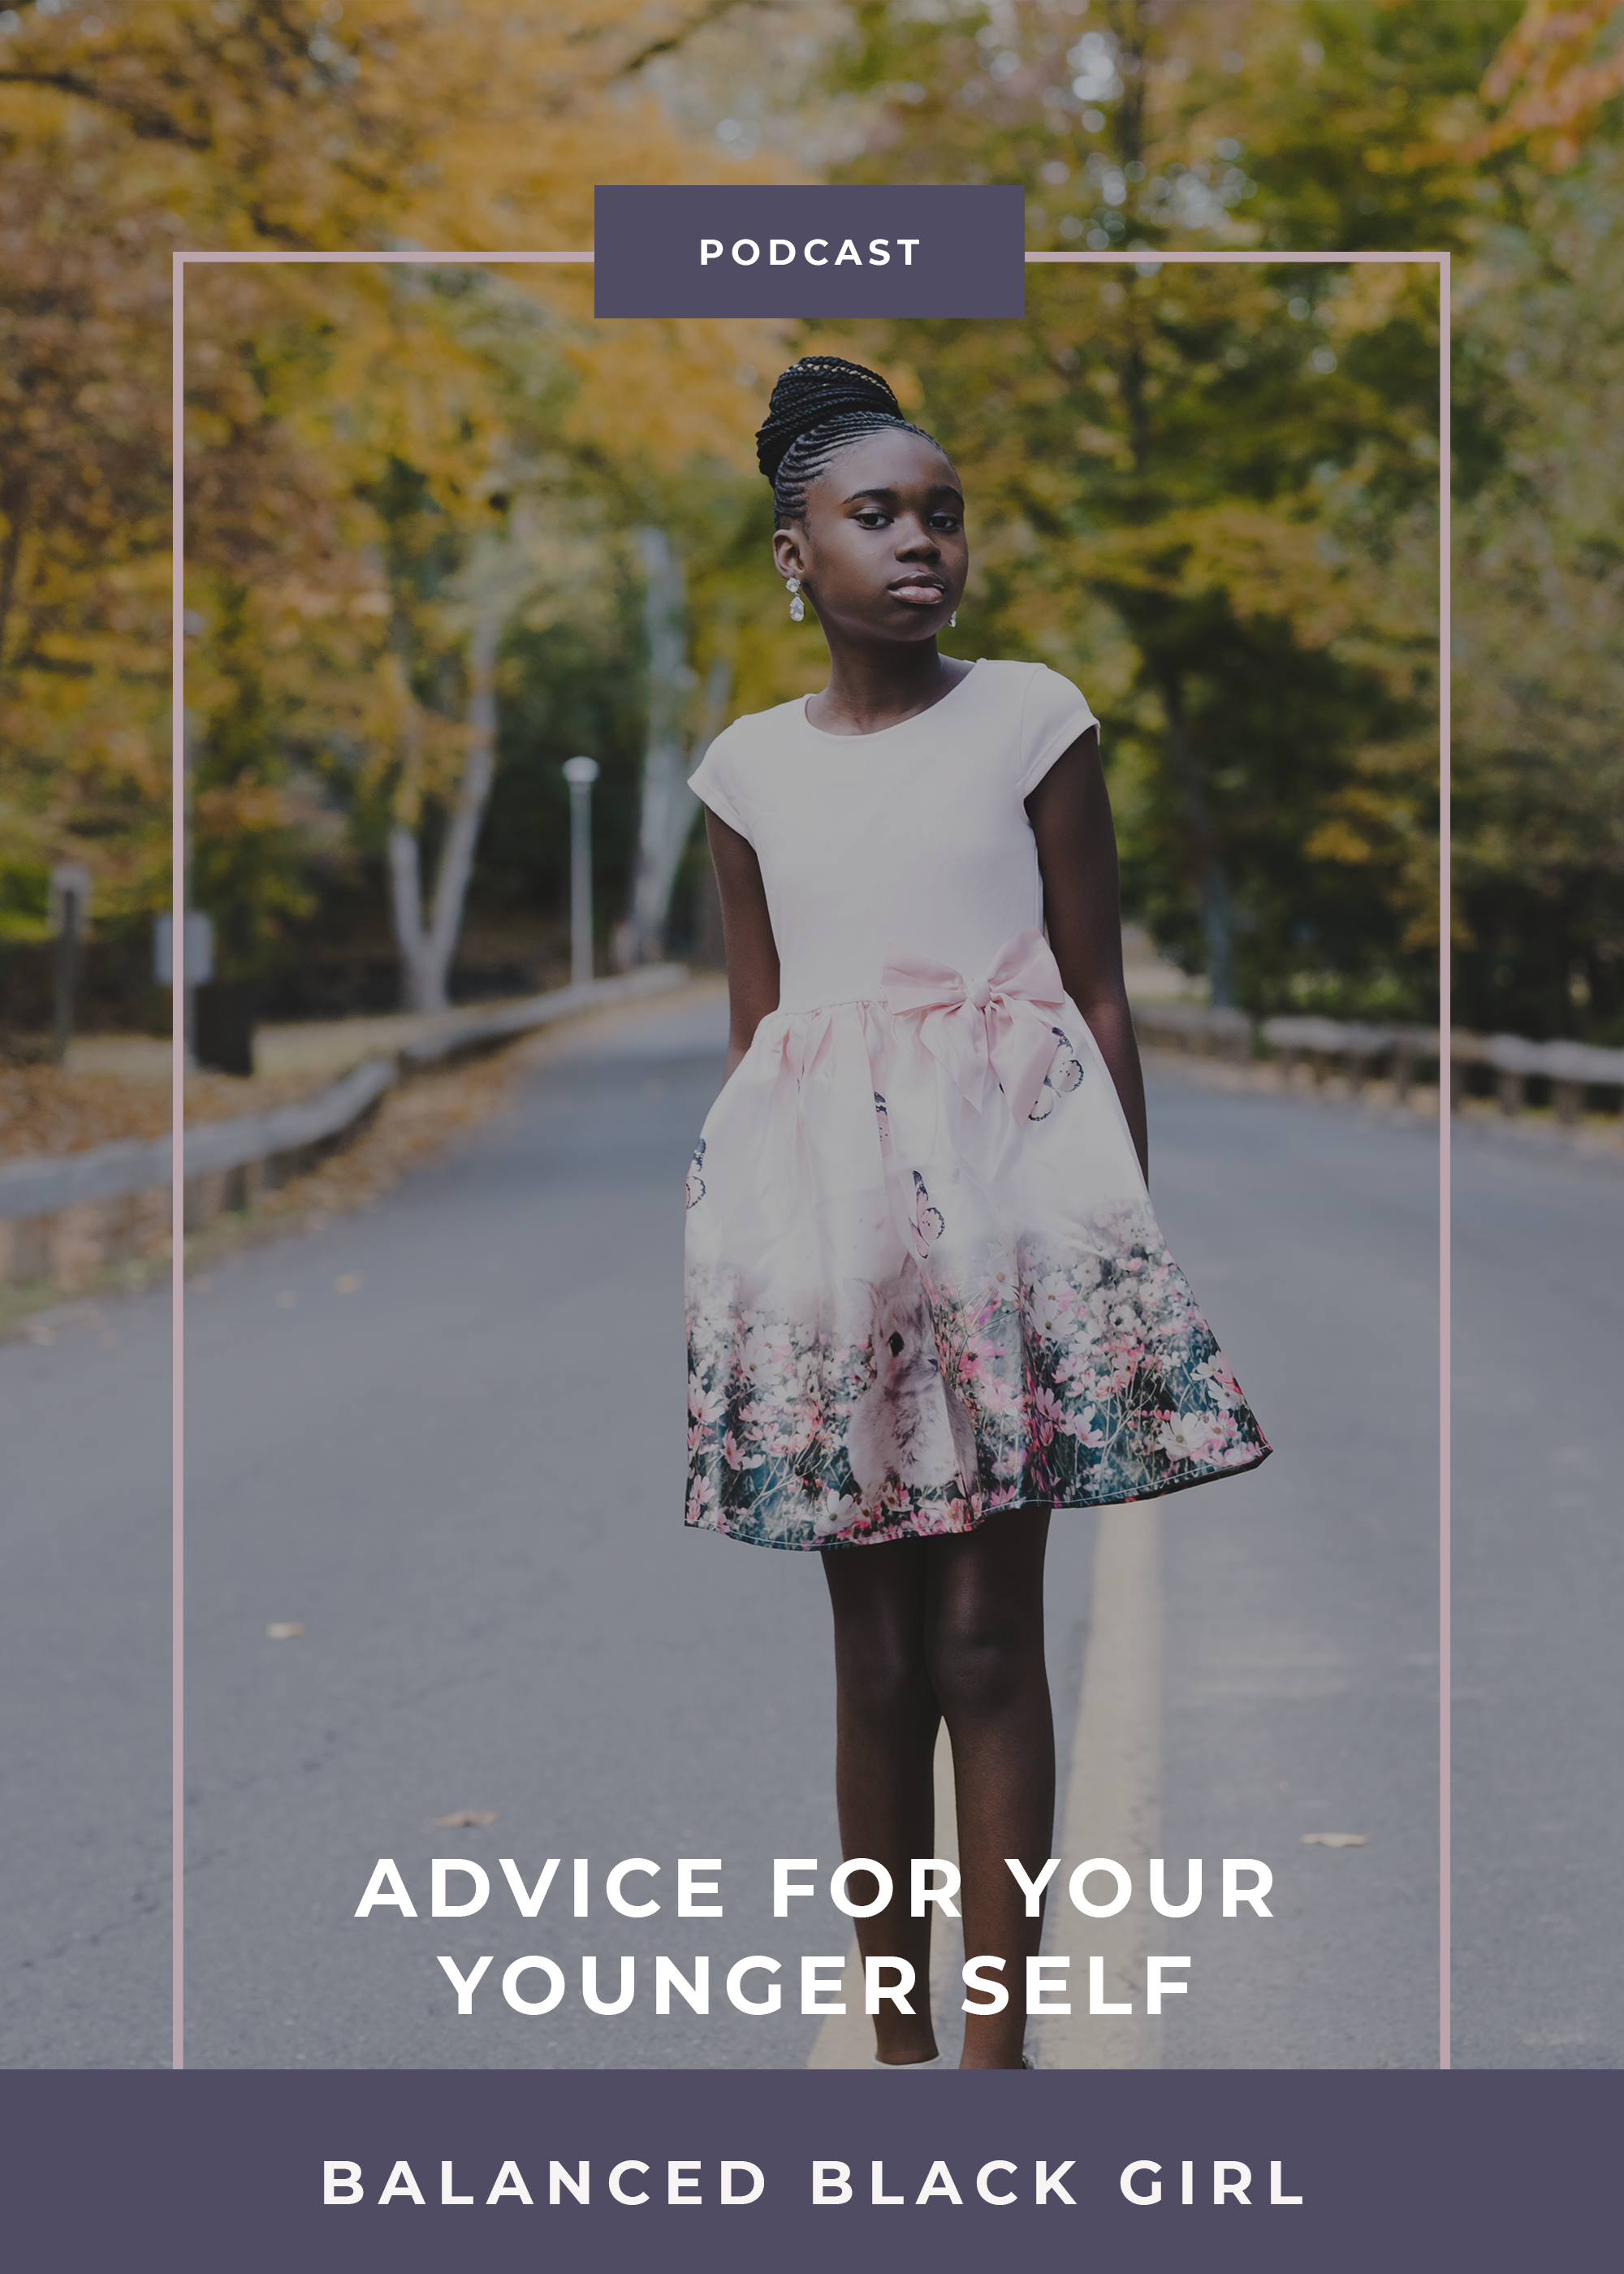 Advice for Your Younger Self | Balanced Black Girl Podcast